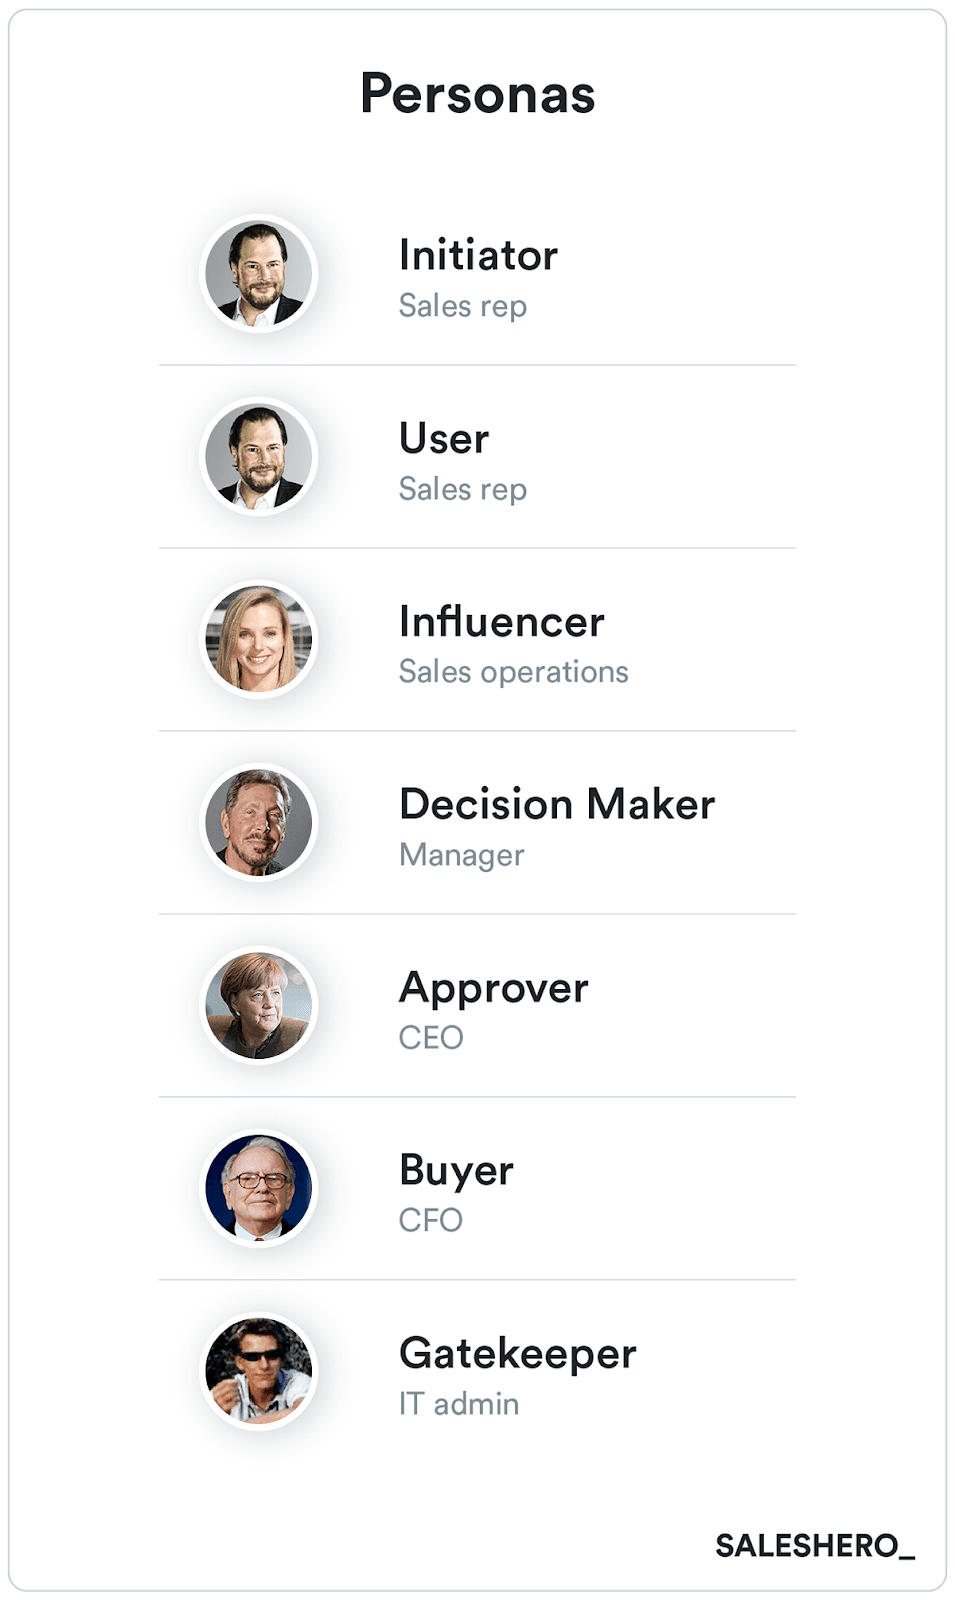 example of personas in go-to-market strategy